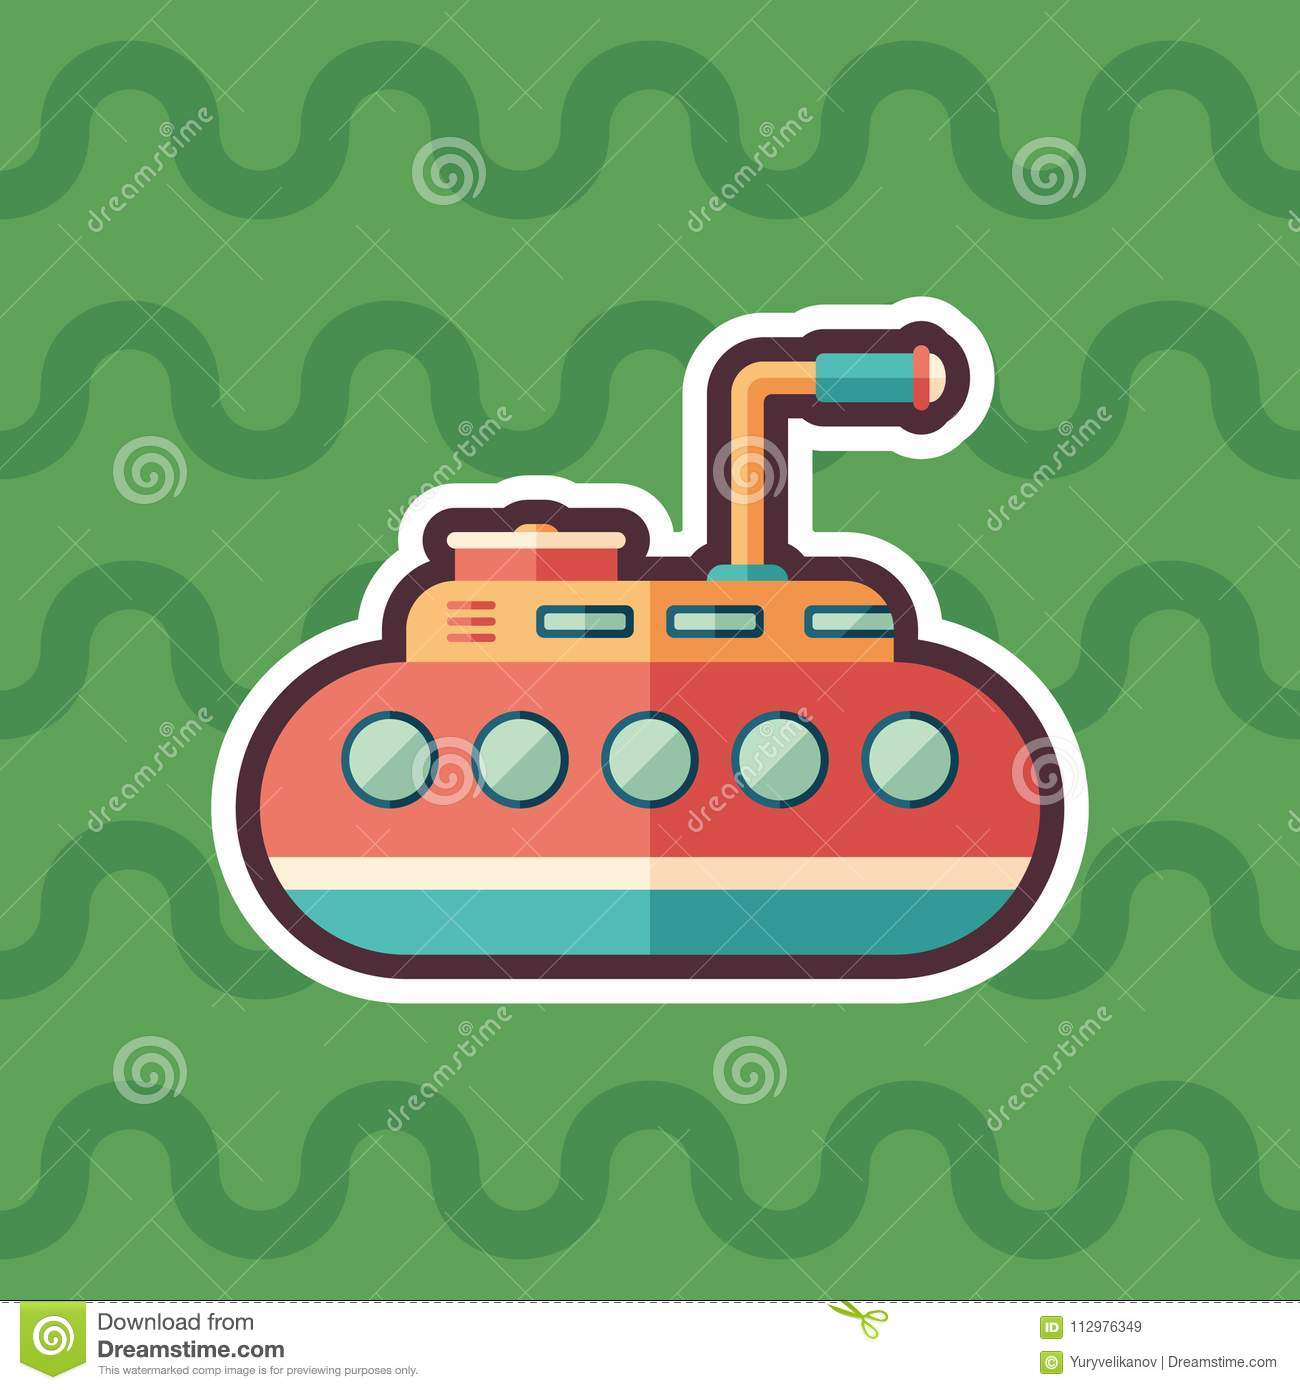 Tourist submarine sticker flat icon with color background.